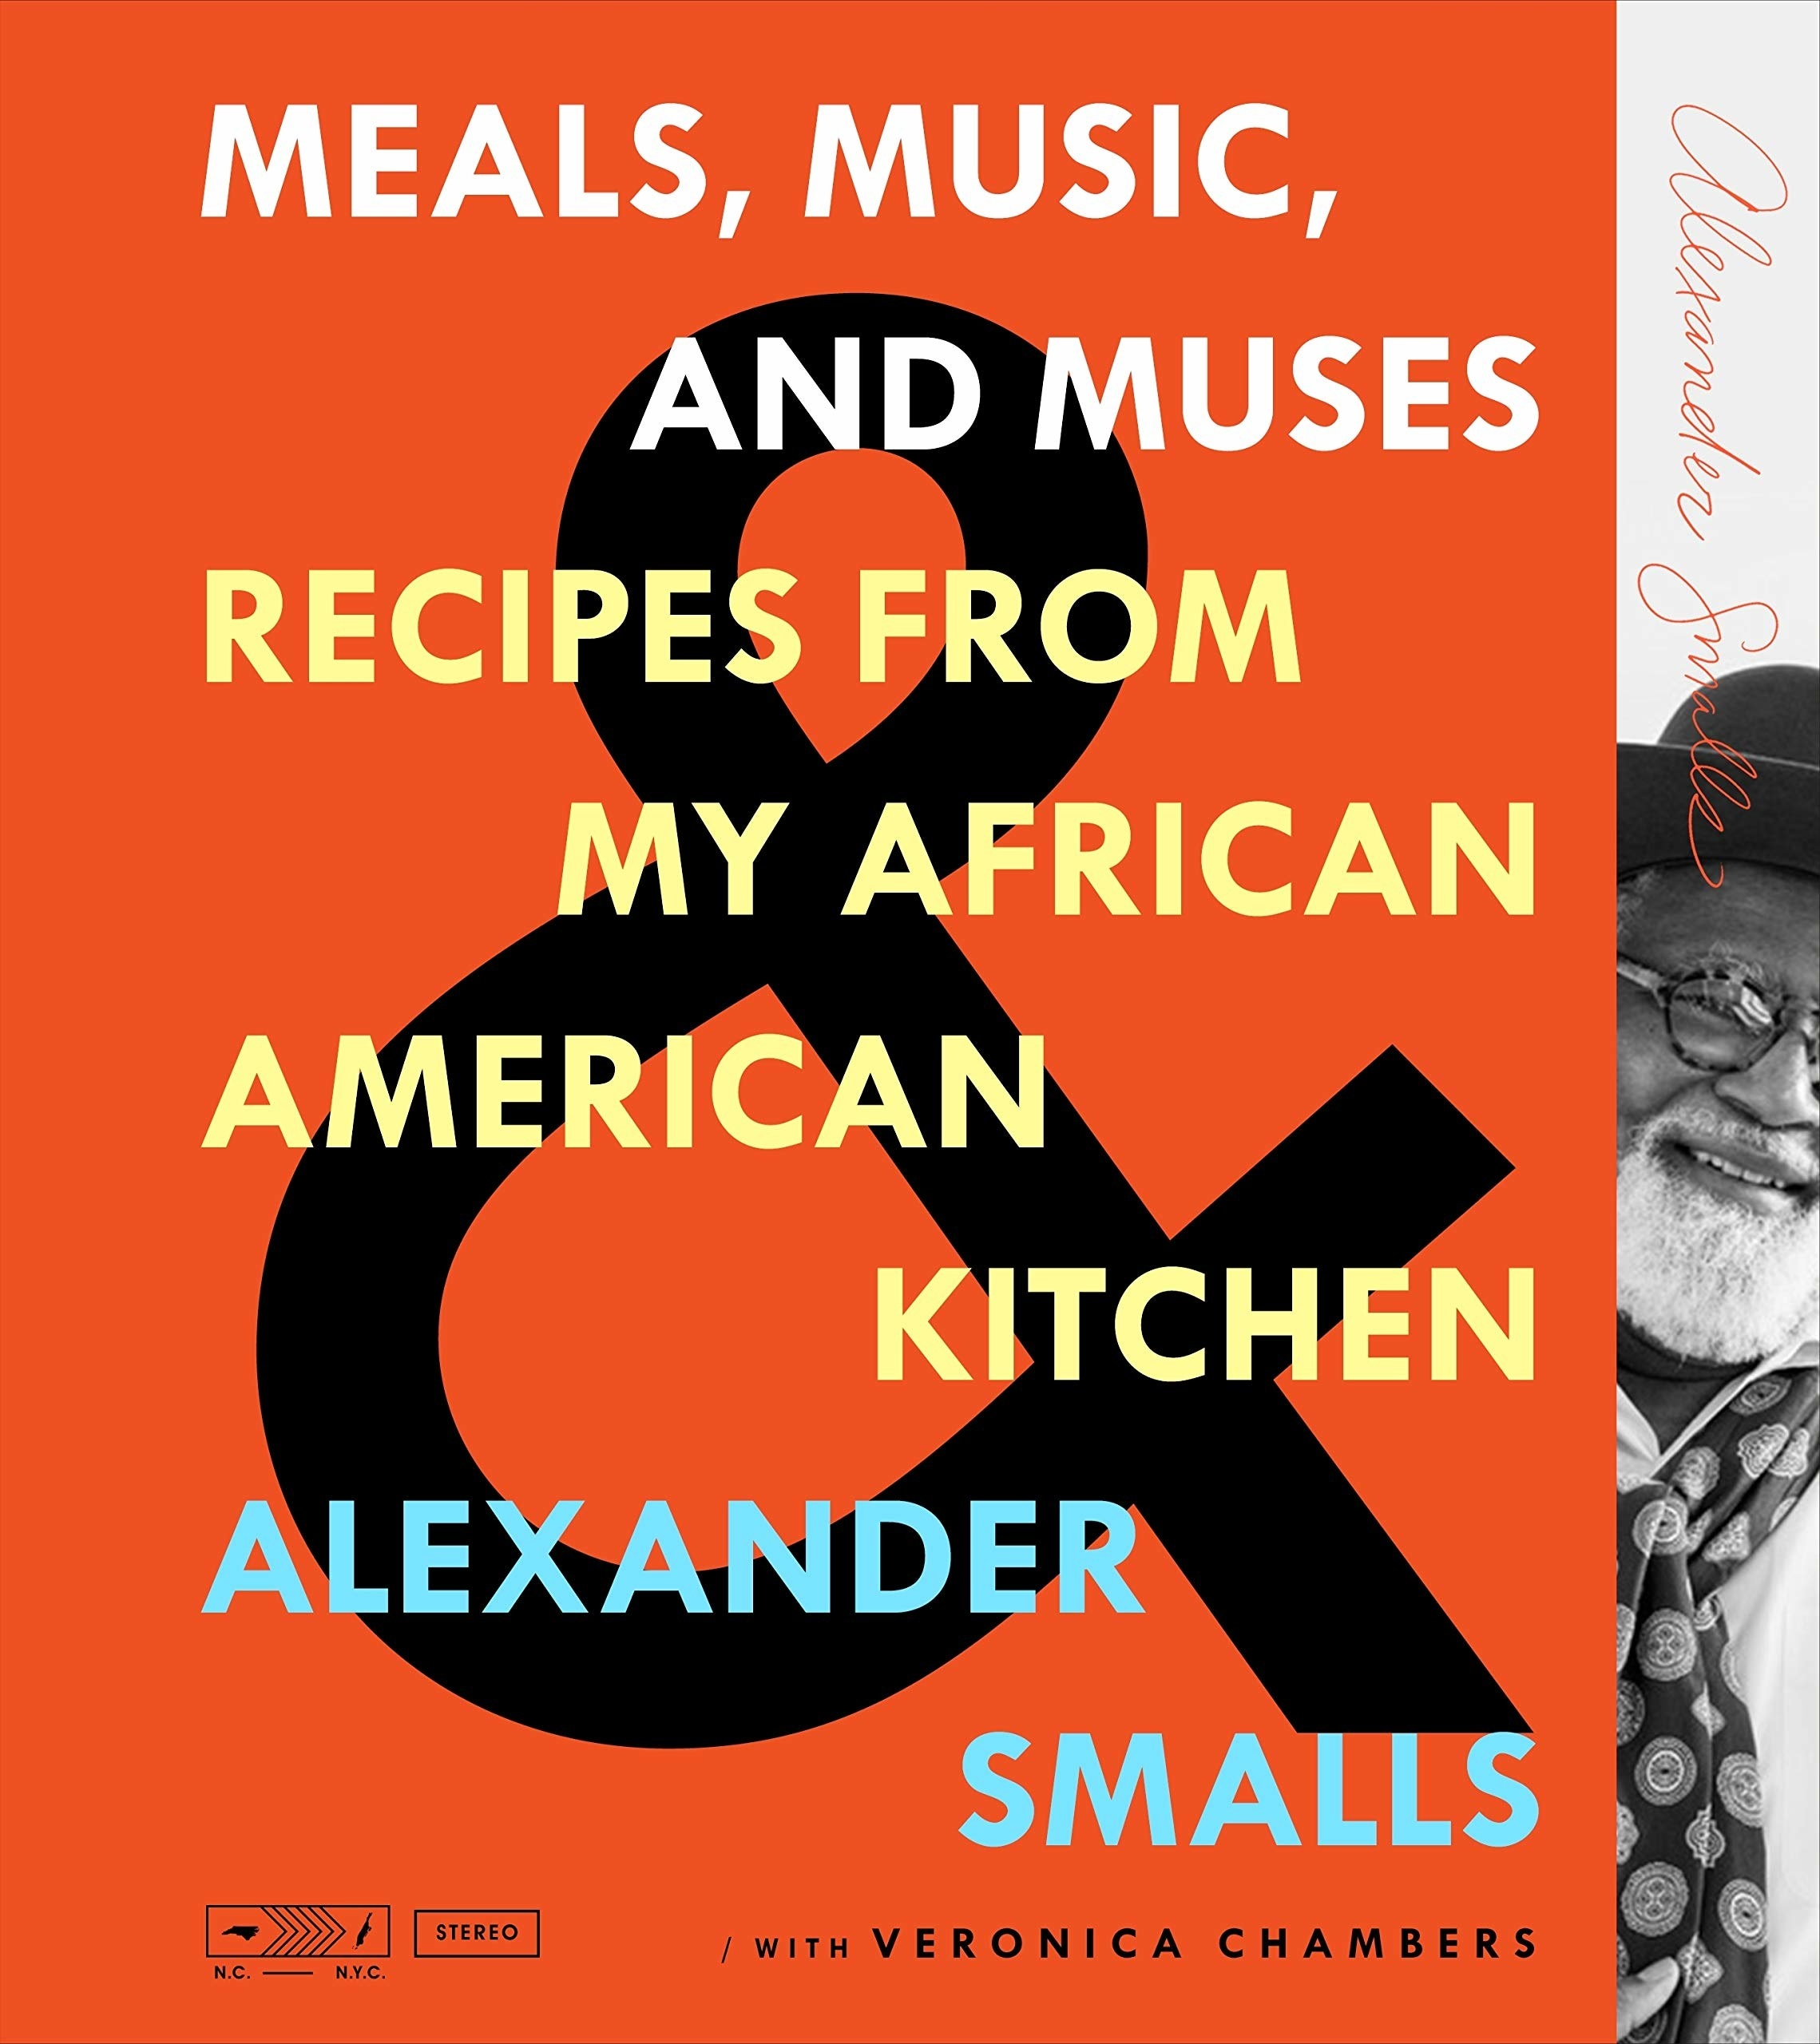 The cover of the cookbook with a black and white portrait of Alexander Smalls